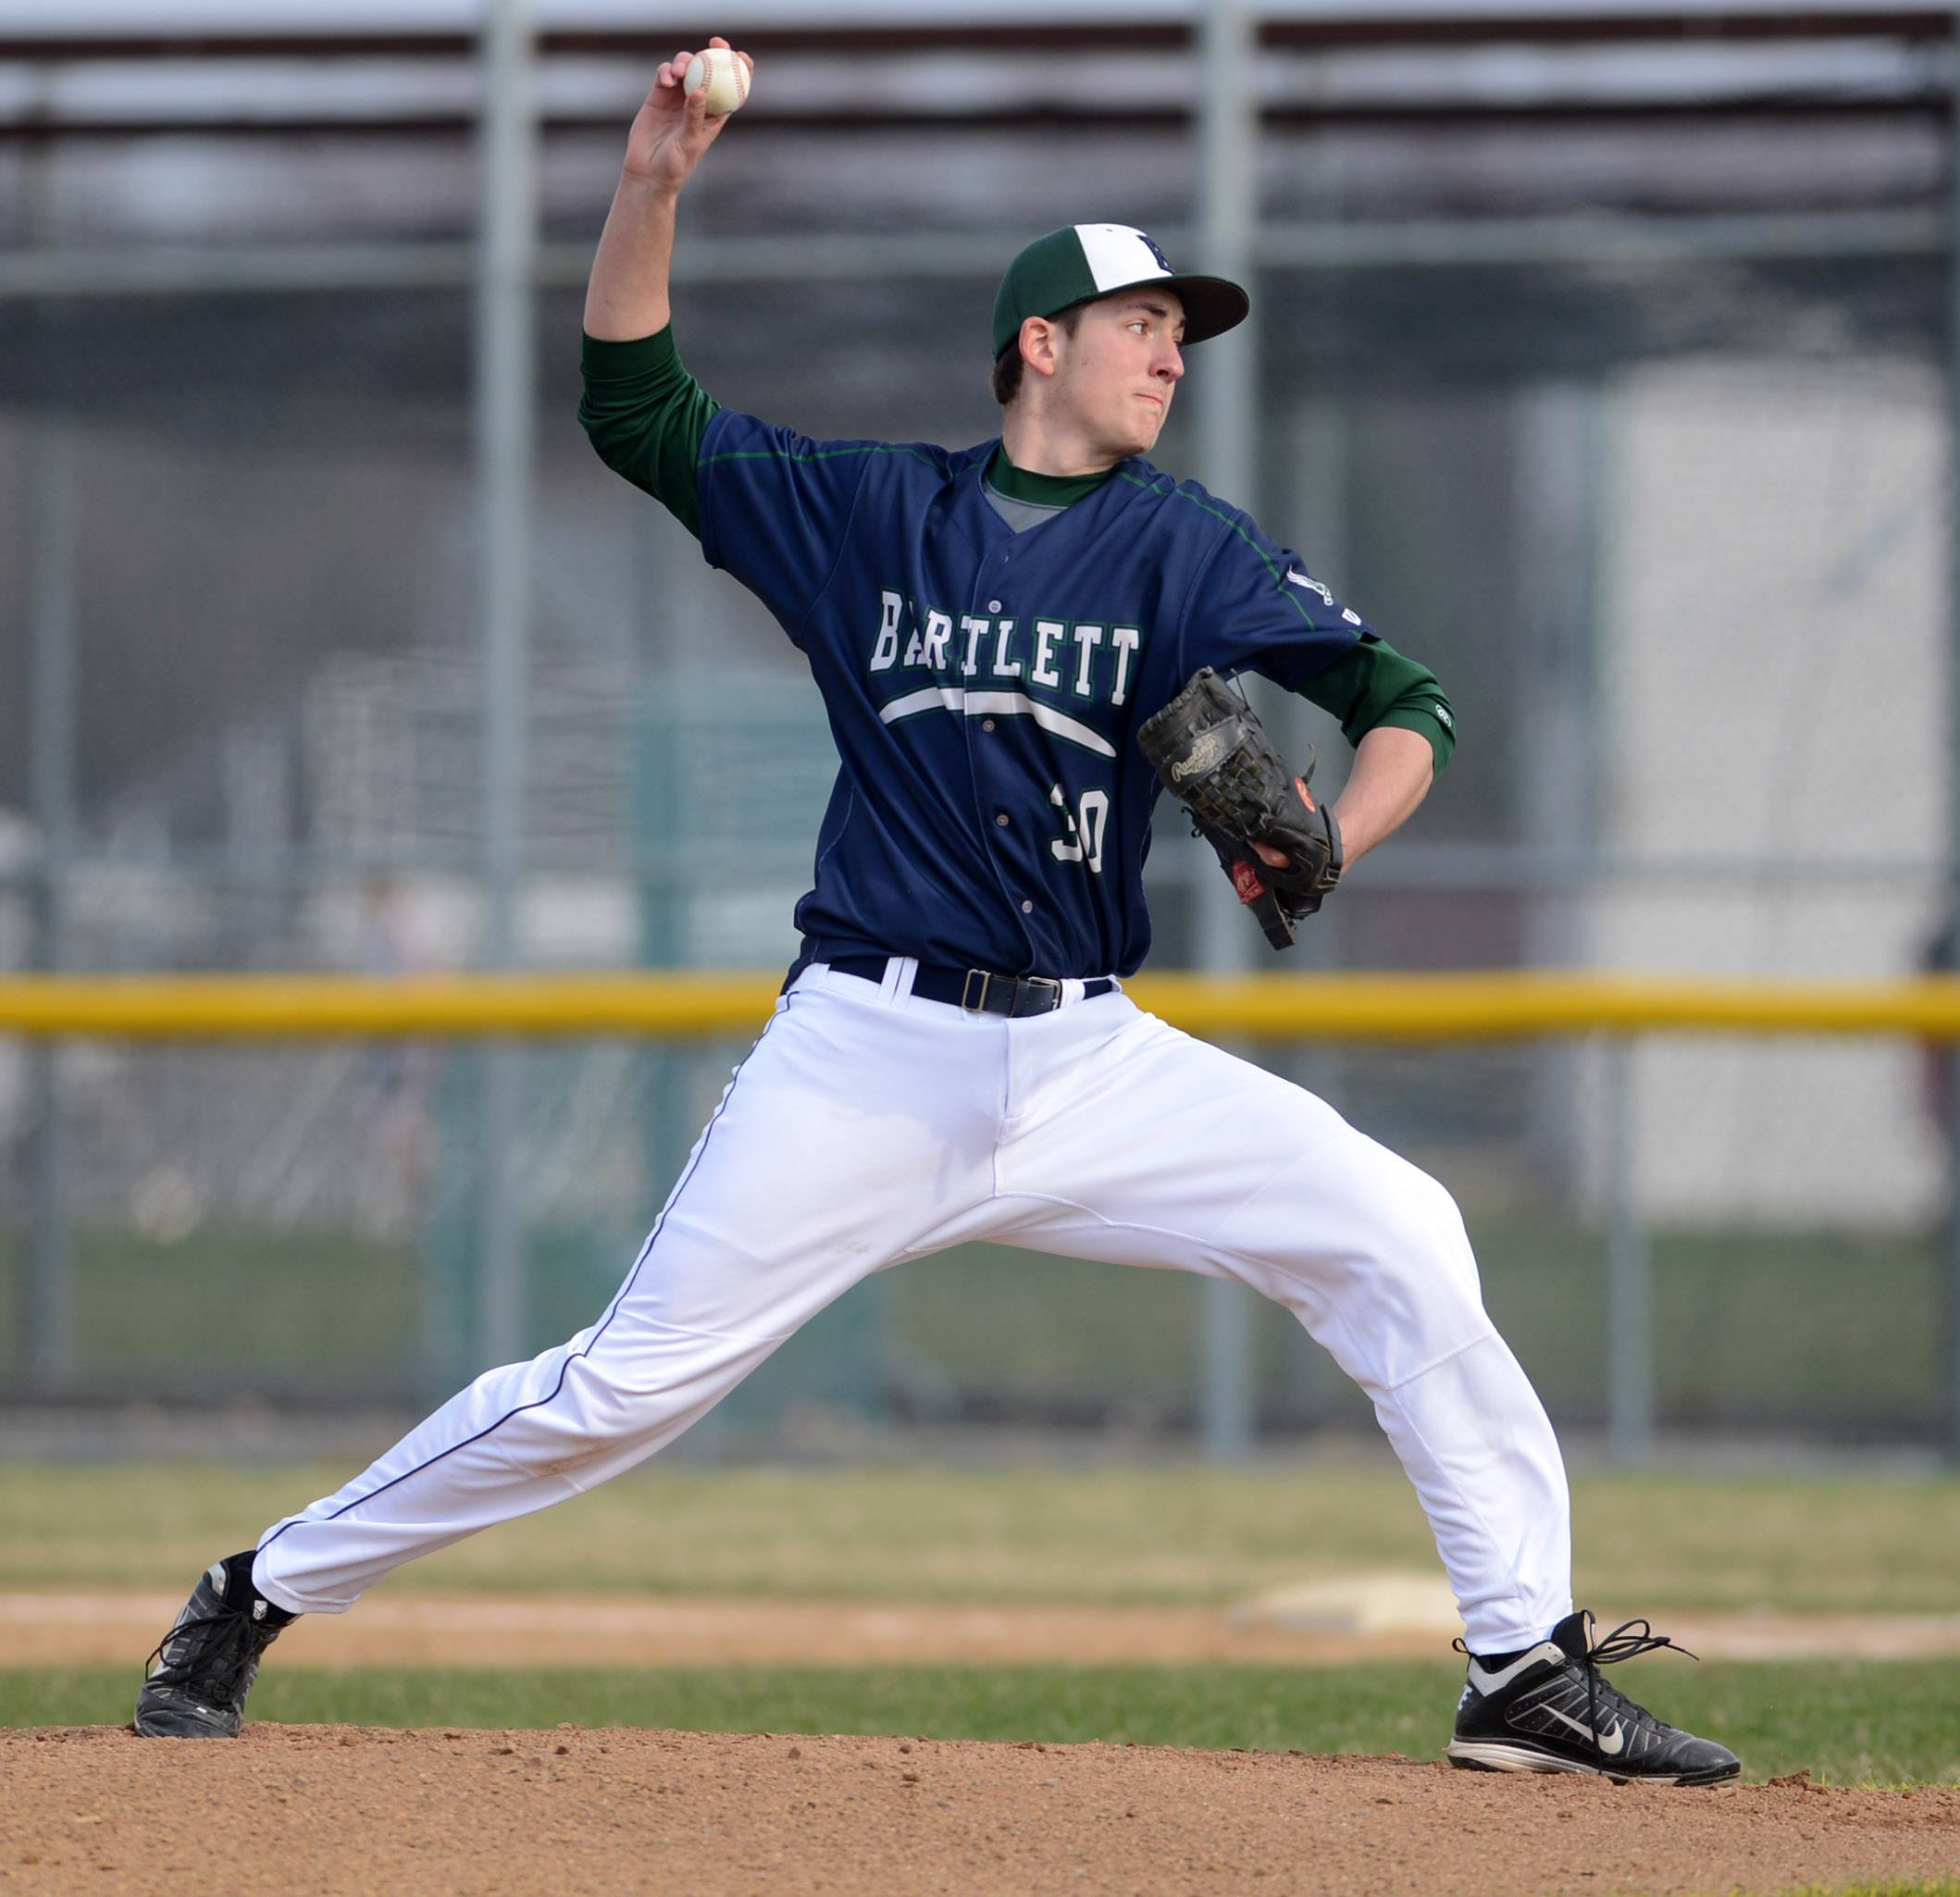 Bartlett's Alex Curtis delivers a pitch to a Streamwood batter during Thursday's game in Bartlett.